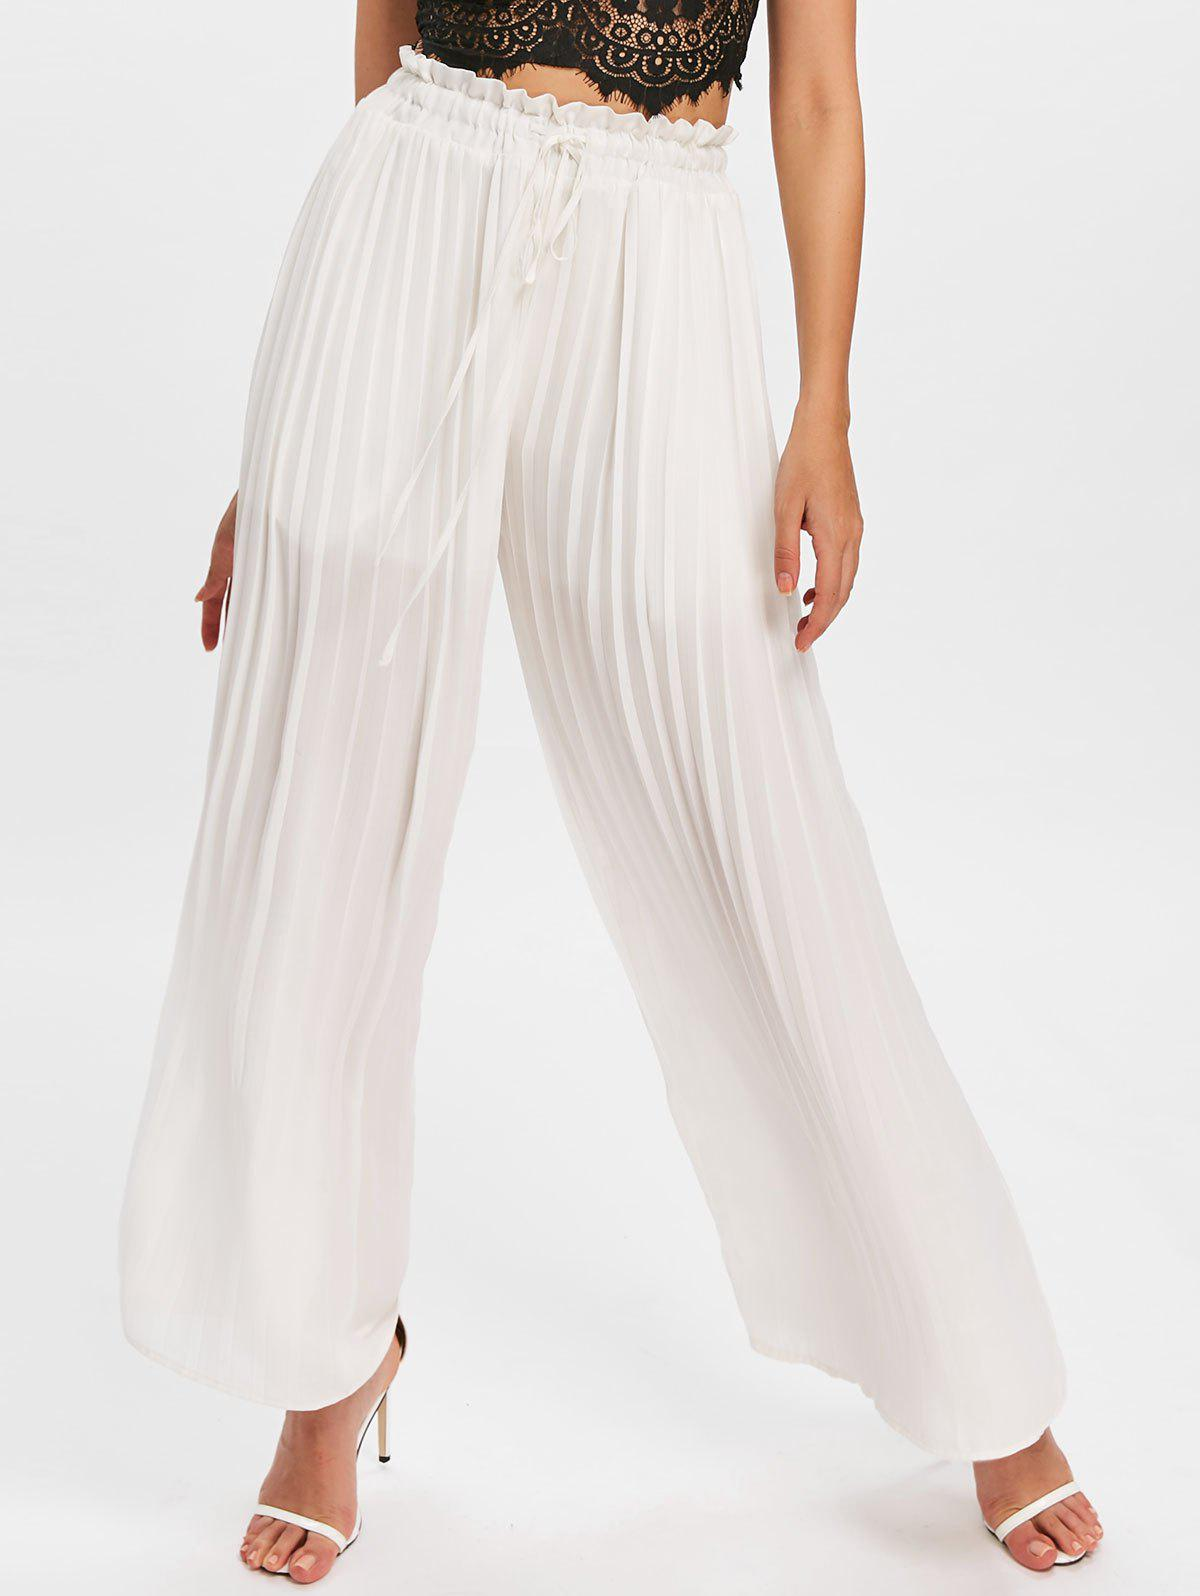 Hot Drawstring Semi Sheer Palazzo Pants